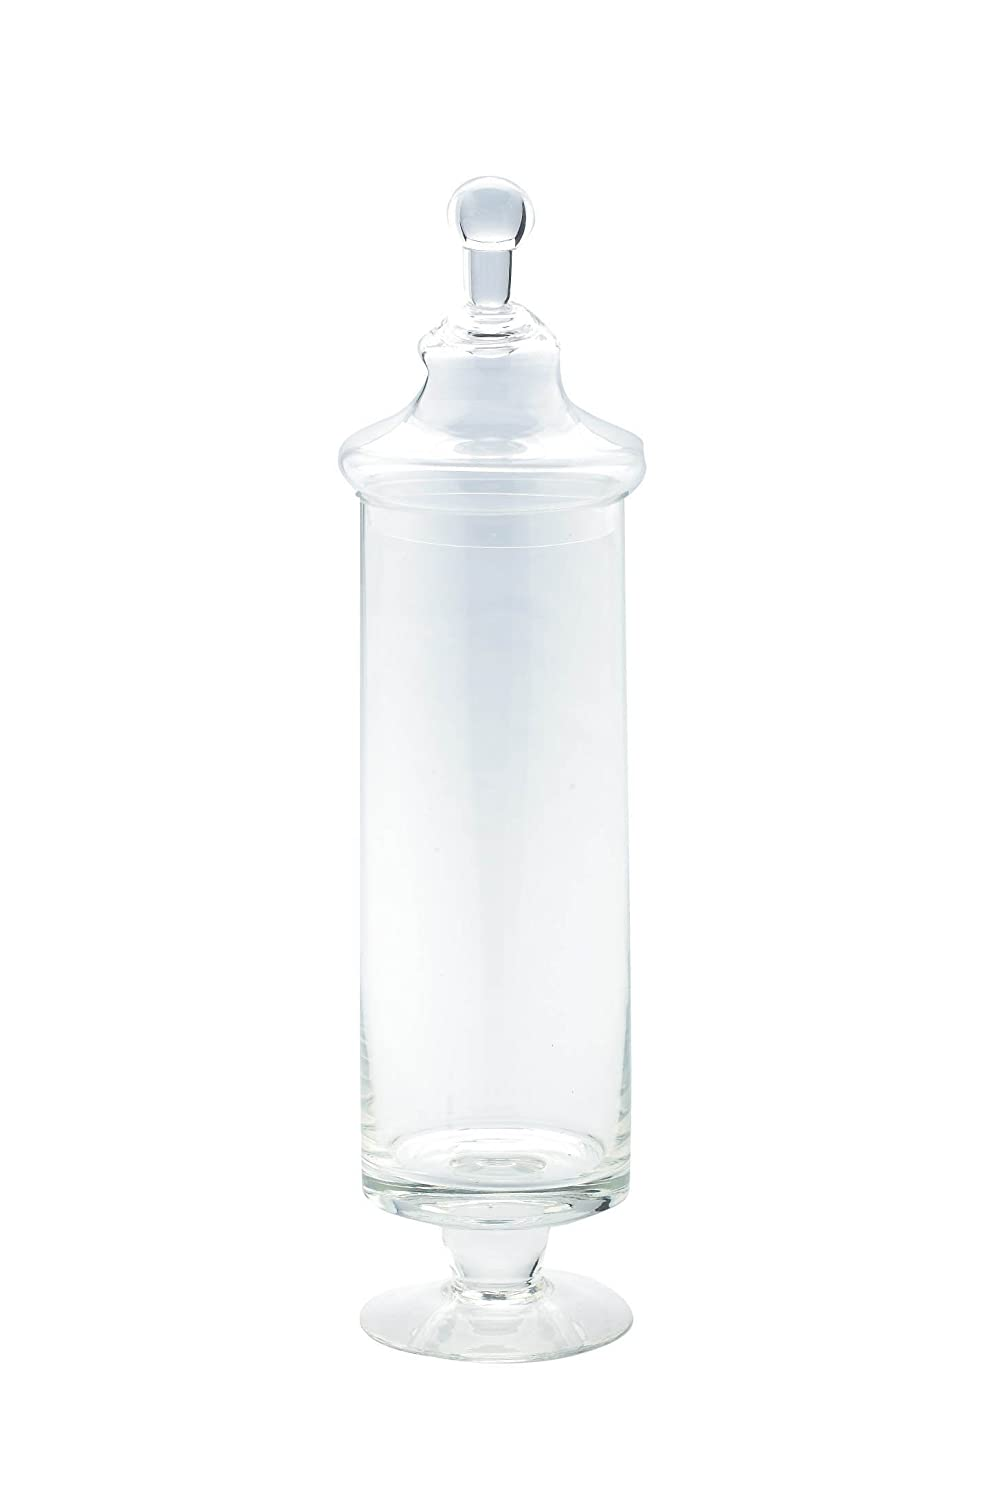 Diamond Star Glass Clear Apothecary Jar, 4 by 17 4 by 17 83727